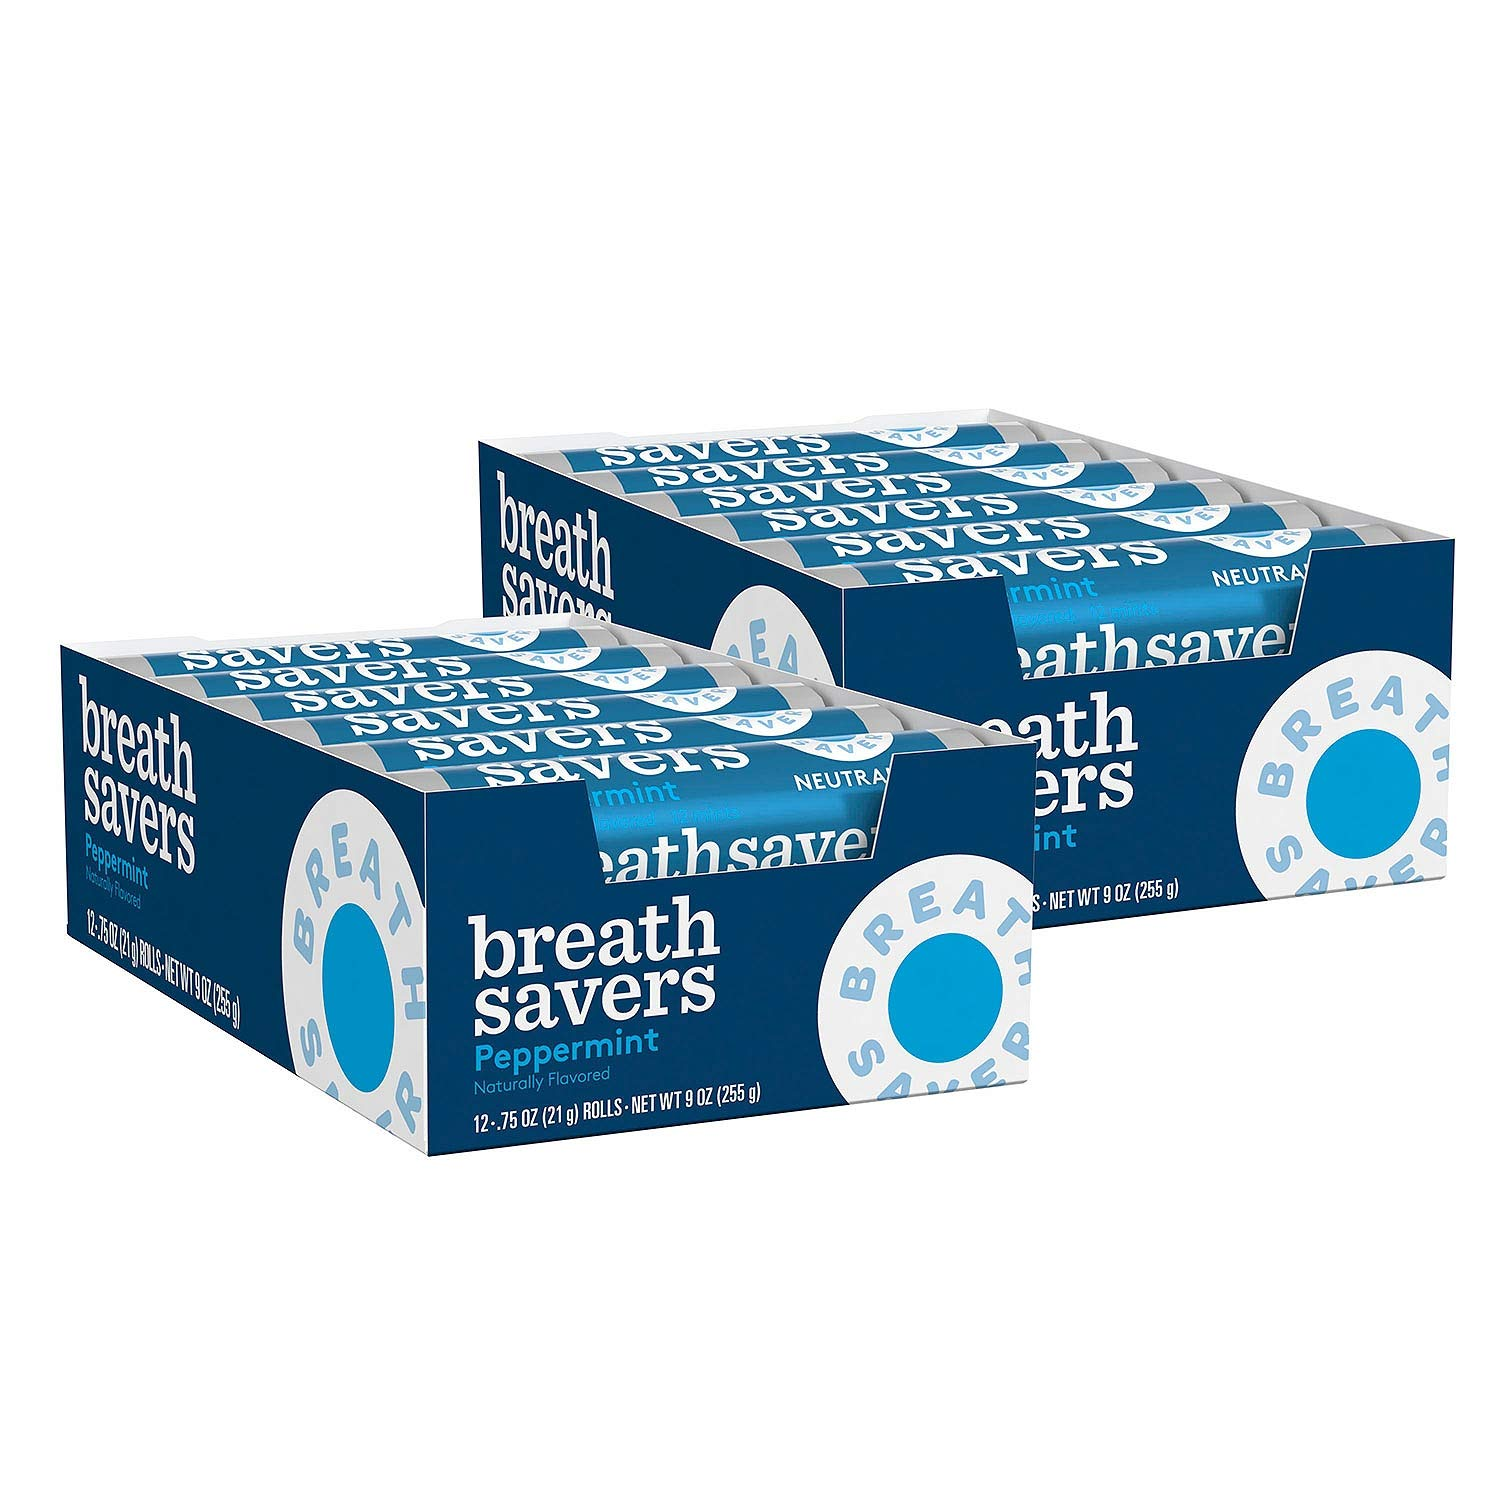 Breathsavers Peppermint Rolled mints, 12 per roll (Pack of 48)